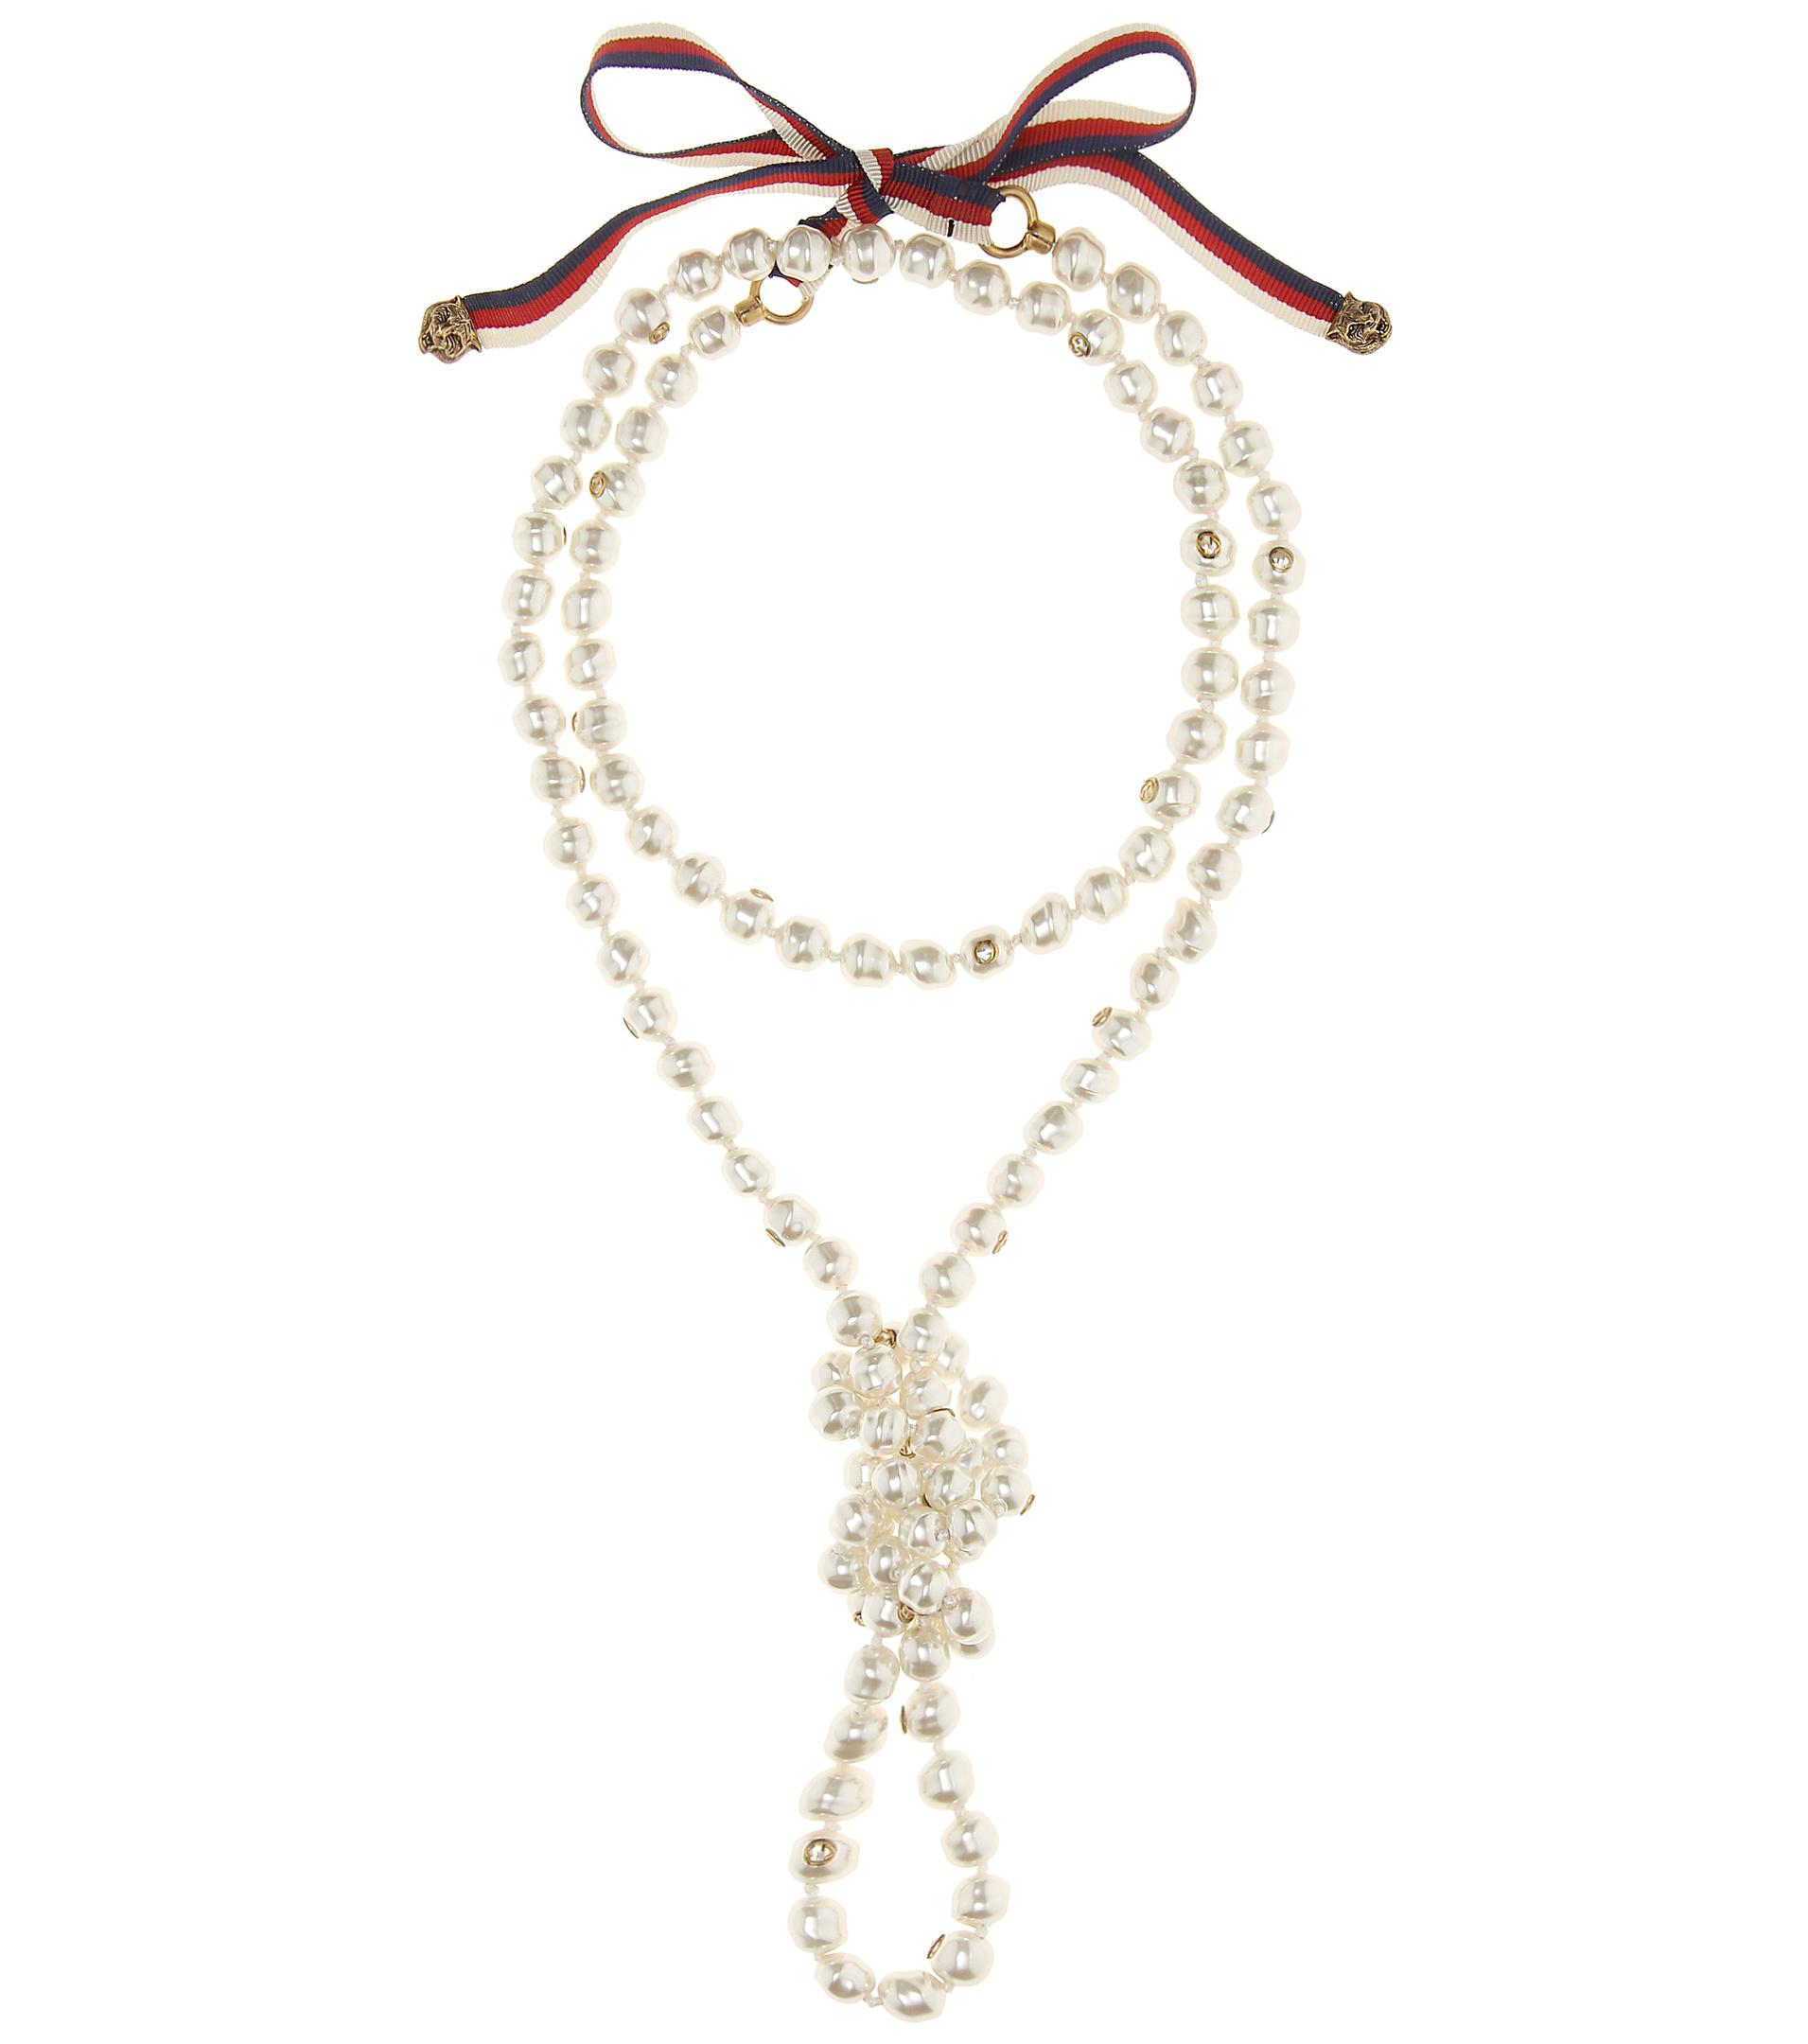 d7949155ac2 Lyst - Gucci Faux Pearl Necklace in White